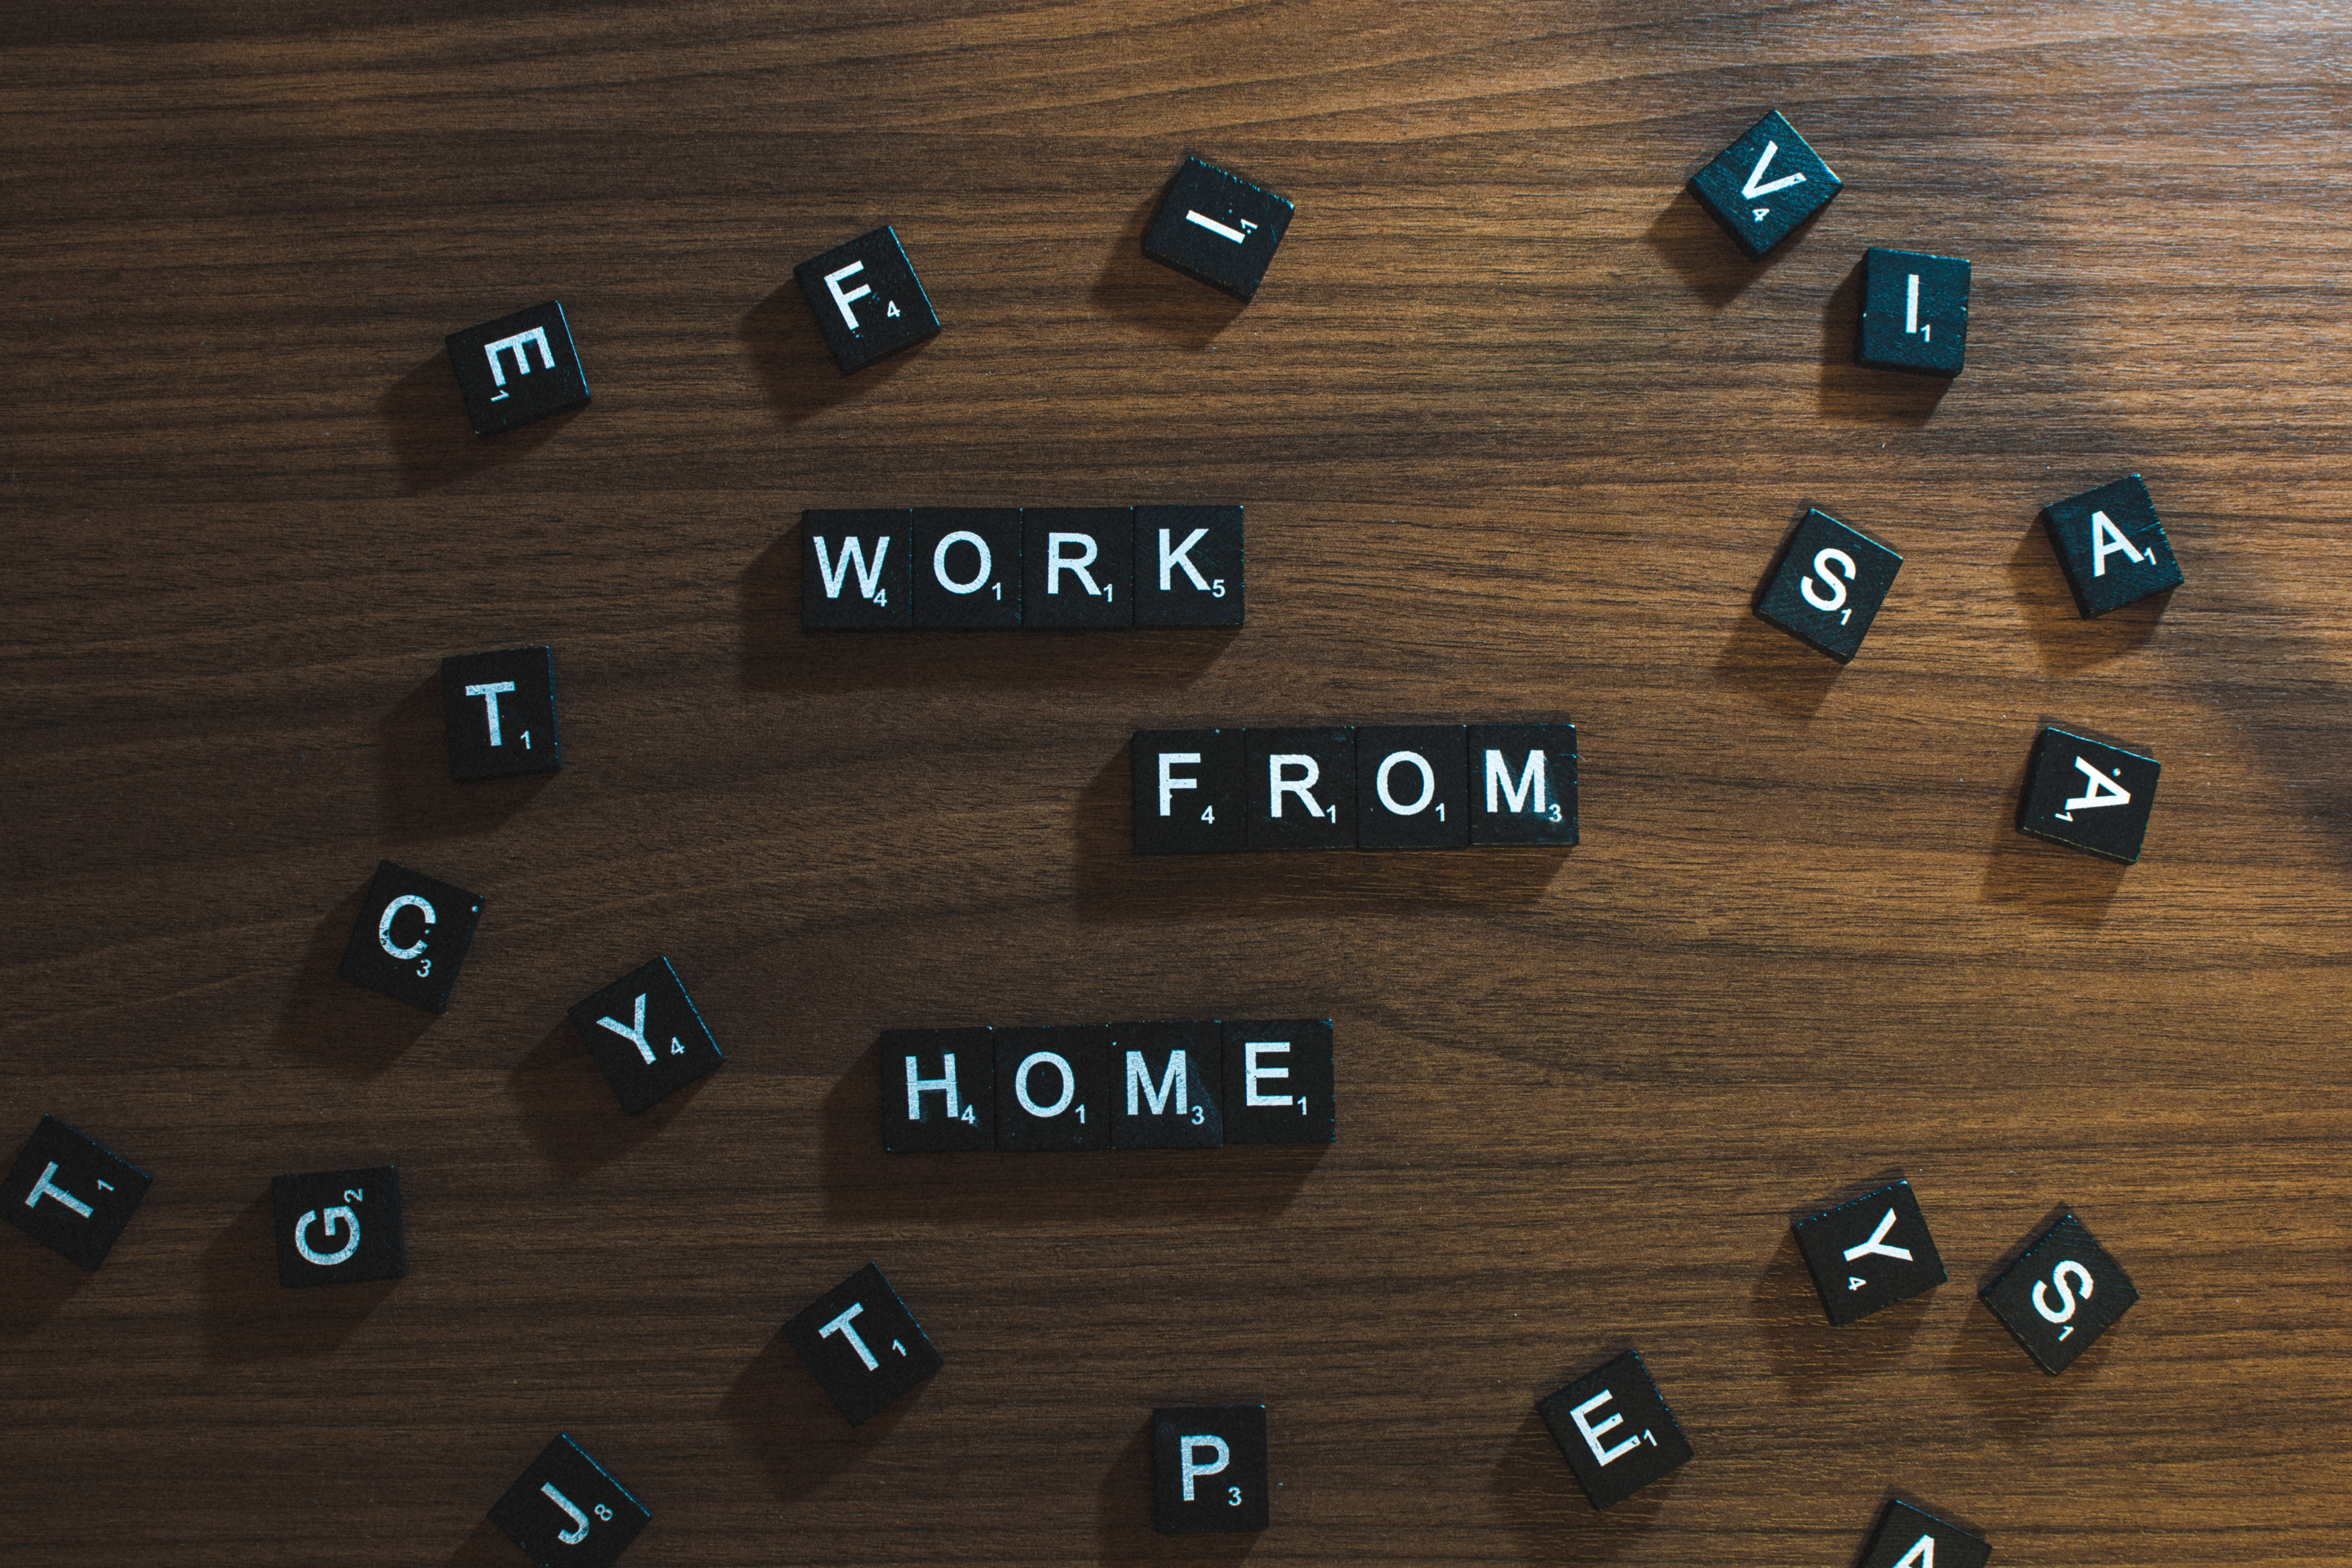 Tips for Working From Home Efficiently